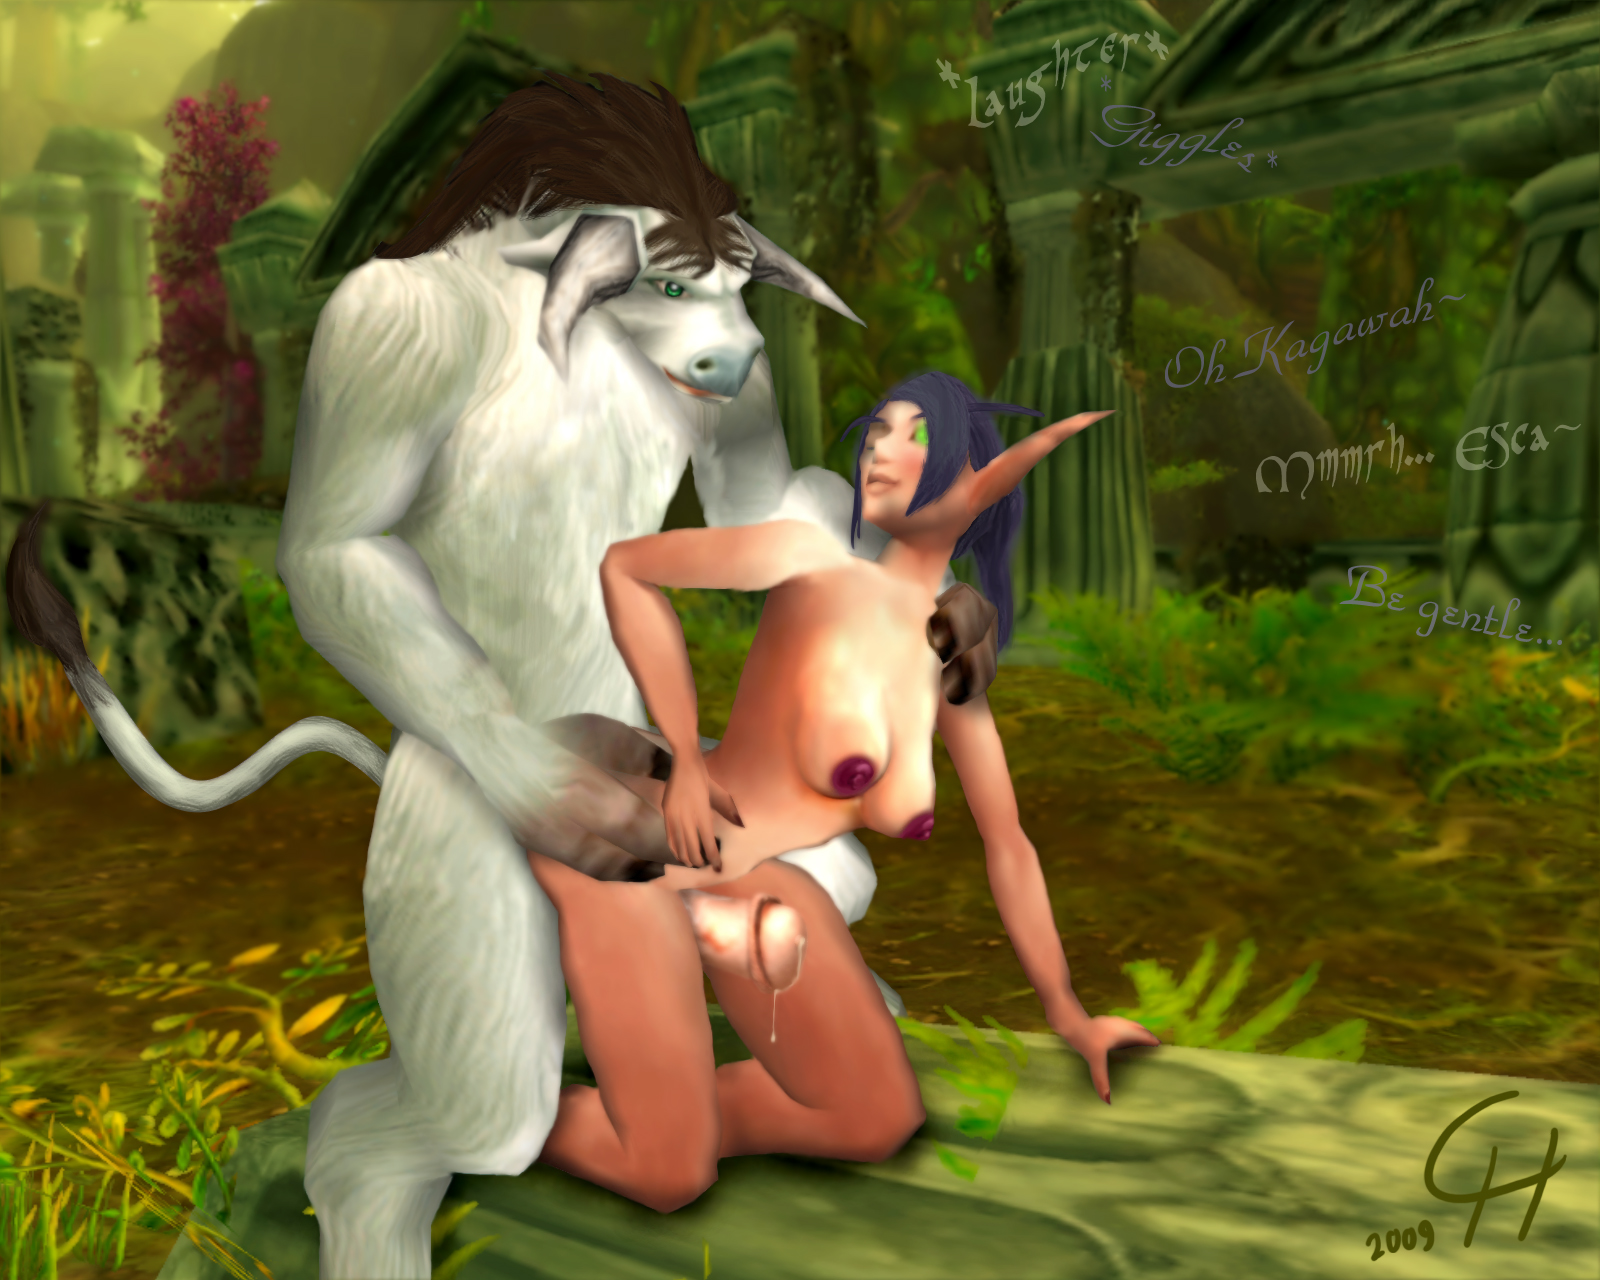 Taurens and elves sex nsfw pic